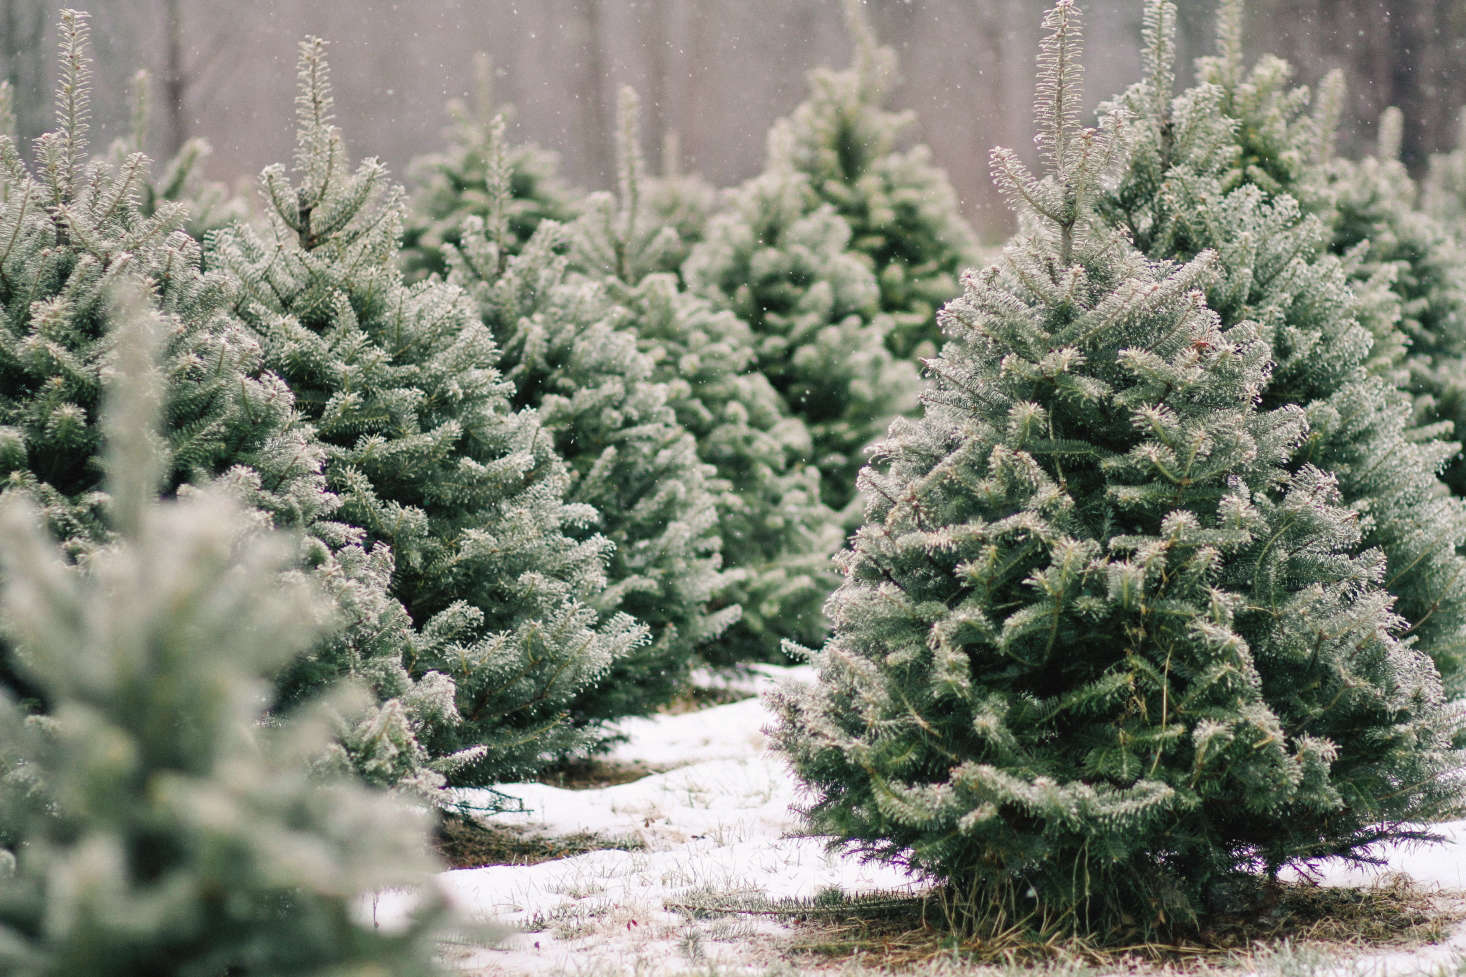 Shopper's Diary: A Christmas Tree Farm in Maine - Gardenista